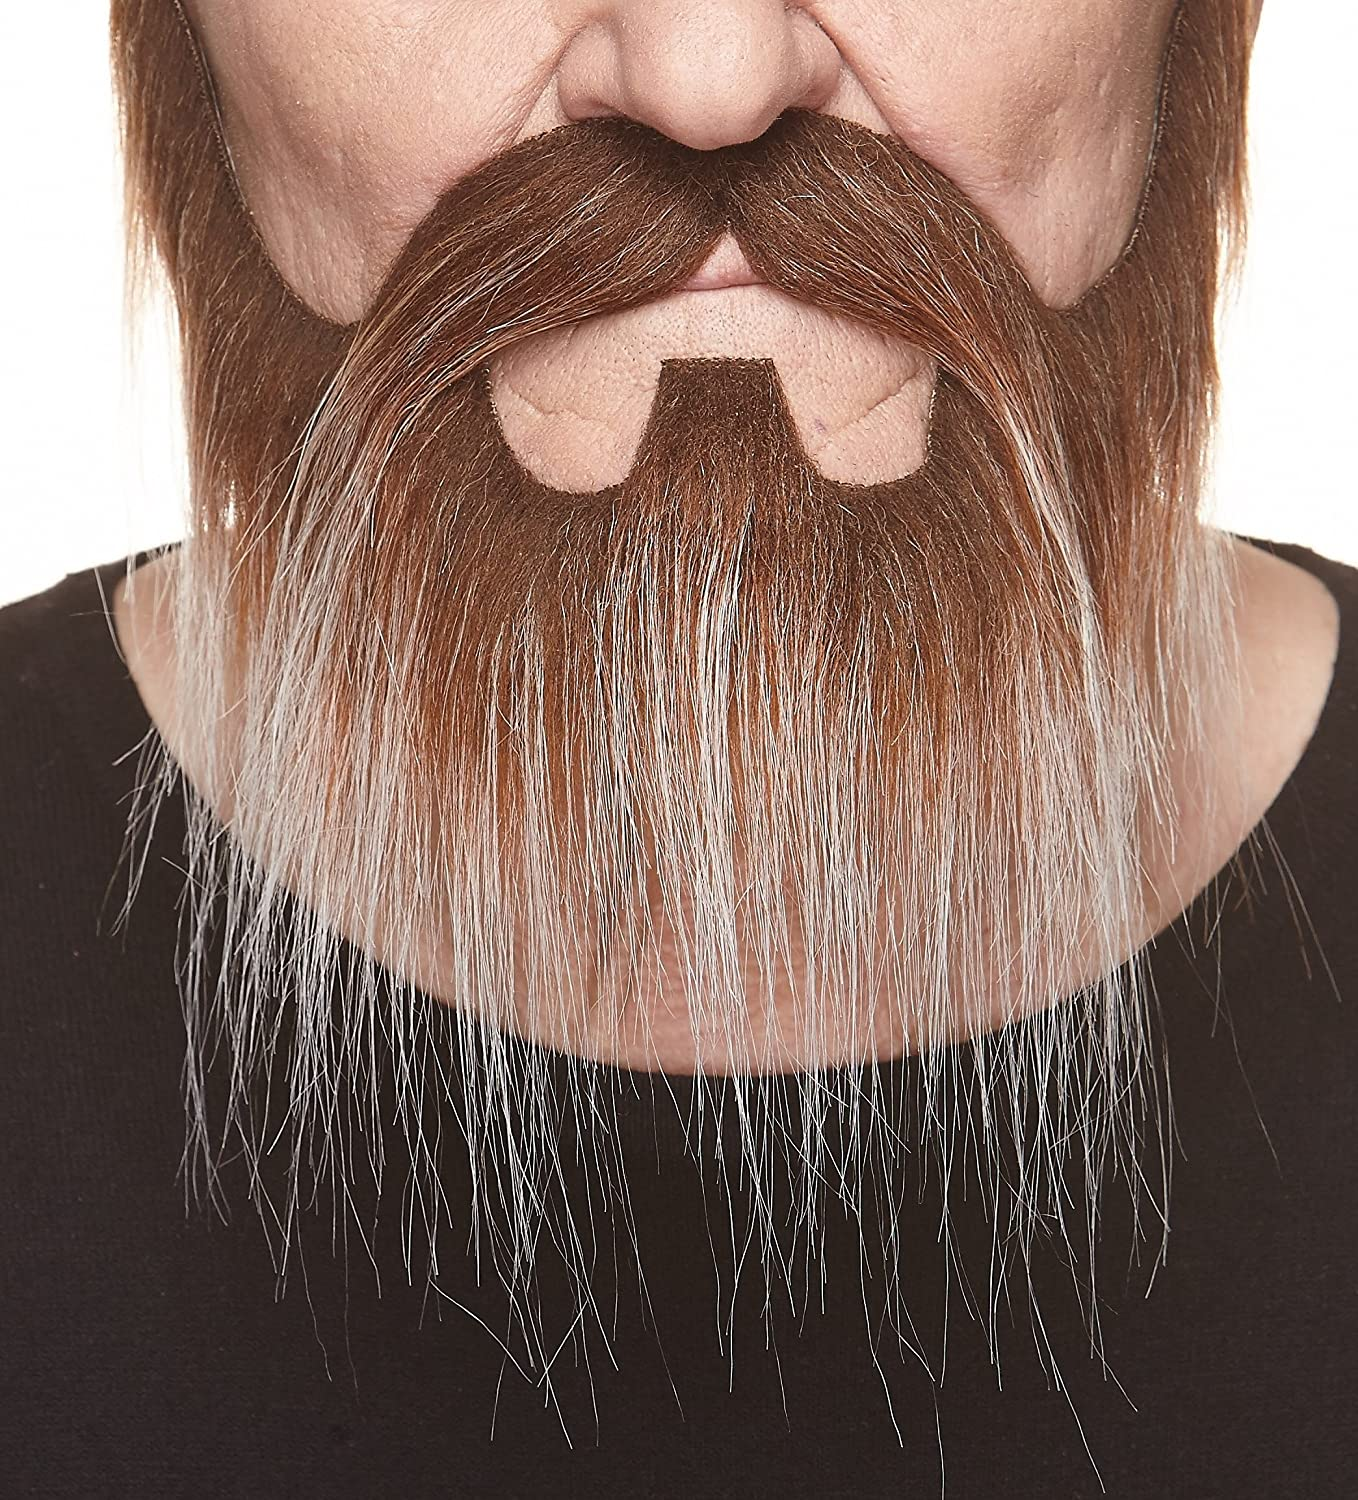 Mustaches Self Adhesive, Novelty, Nomad Fake Beard and Fake Mustache, False Facial Hair, Costume Accessory for Adults